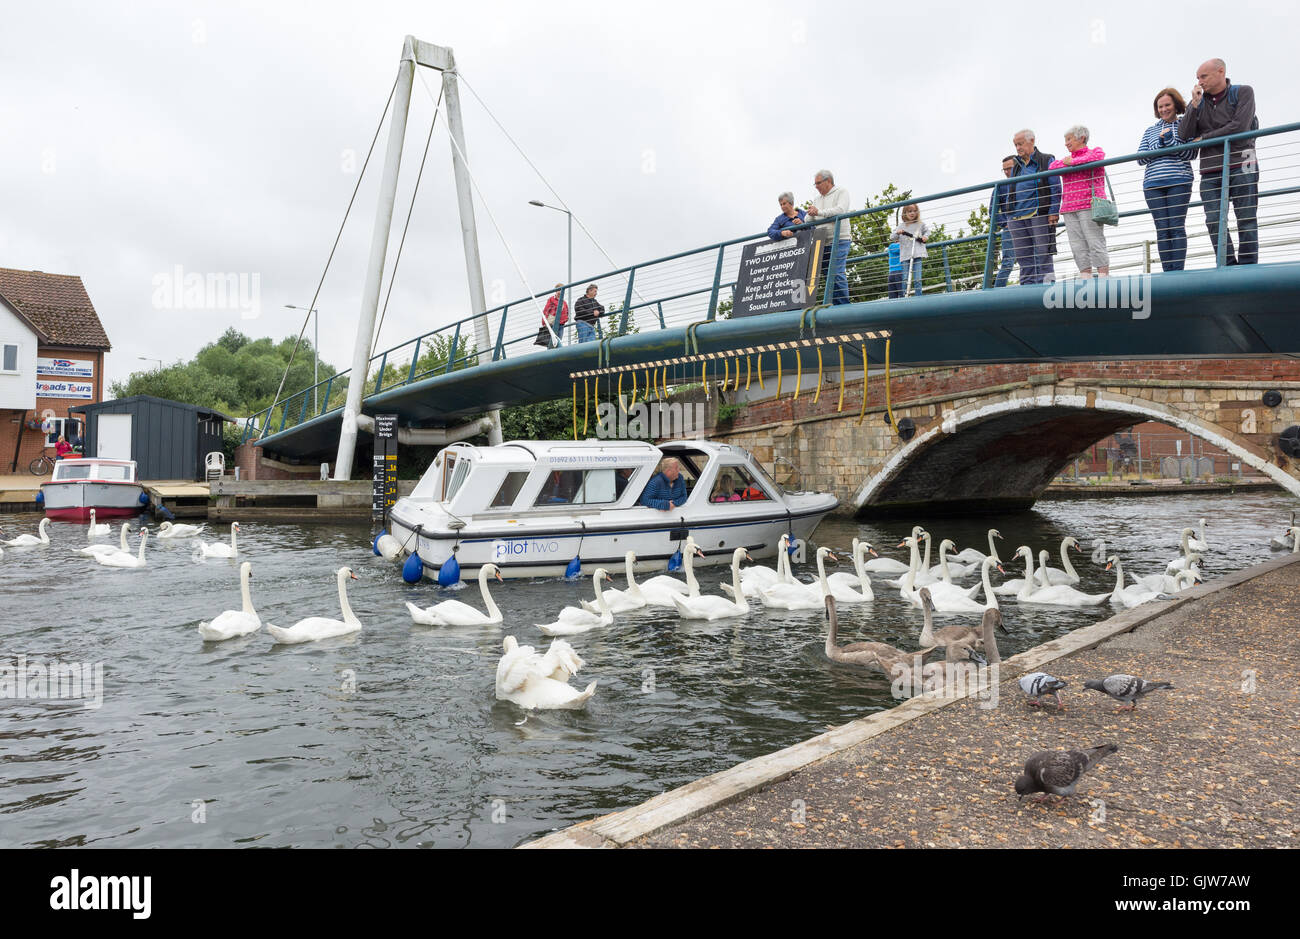 A pleasure boat passes under onlookers stood on a road bridge while a flock of swans gather at the riverside, Wroxham, - Stock Image